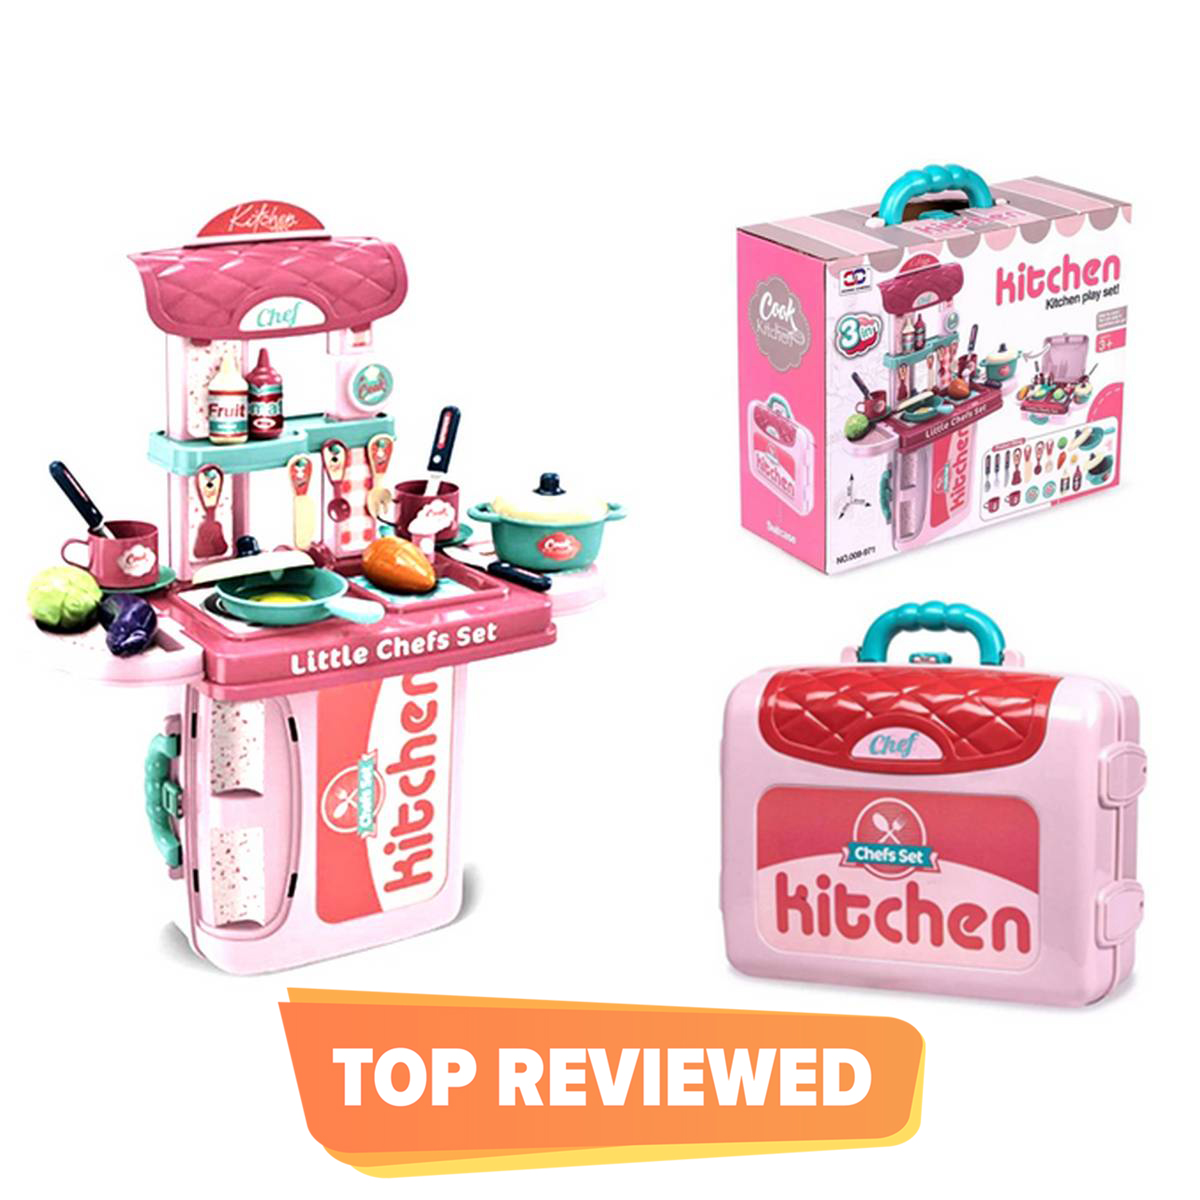 Kids Toys Games Online Shopping Store in Pakistan with COD! - Daraz.pk